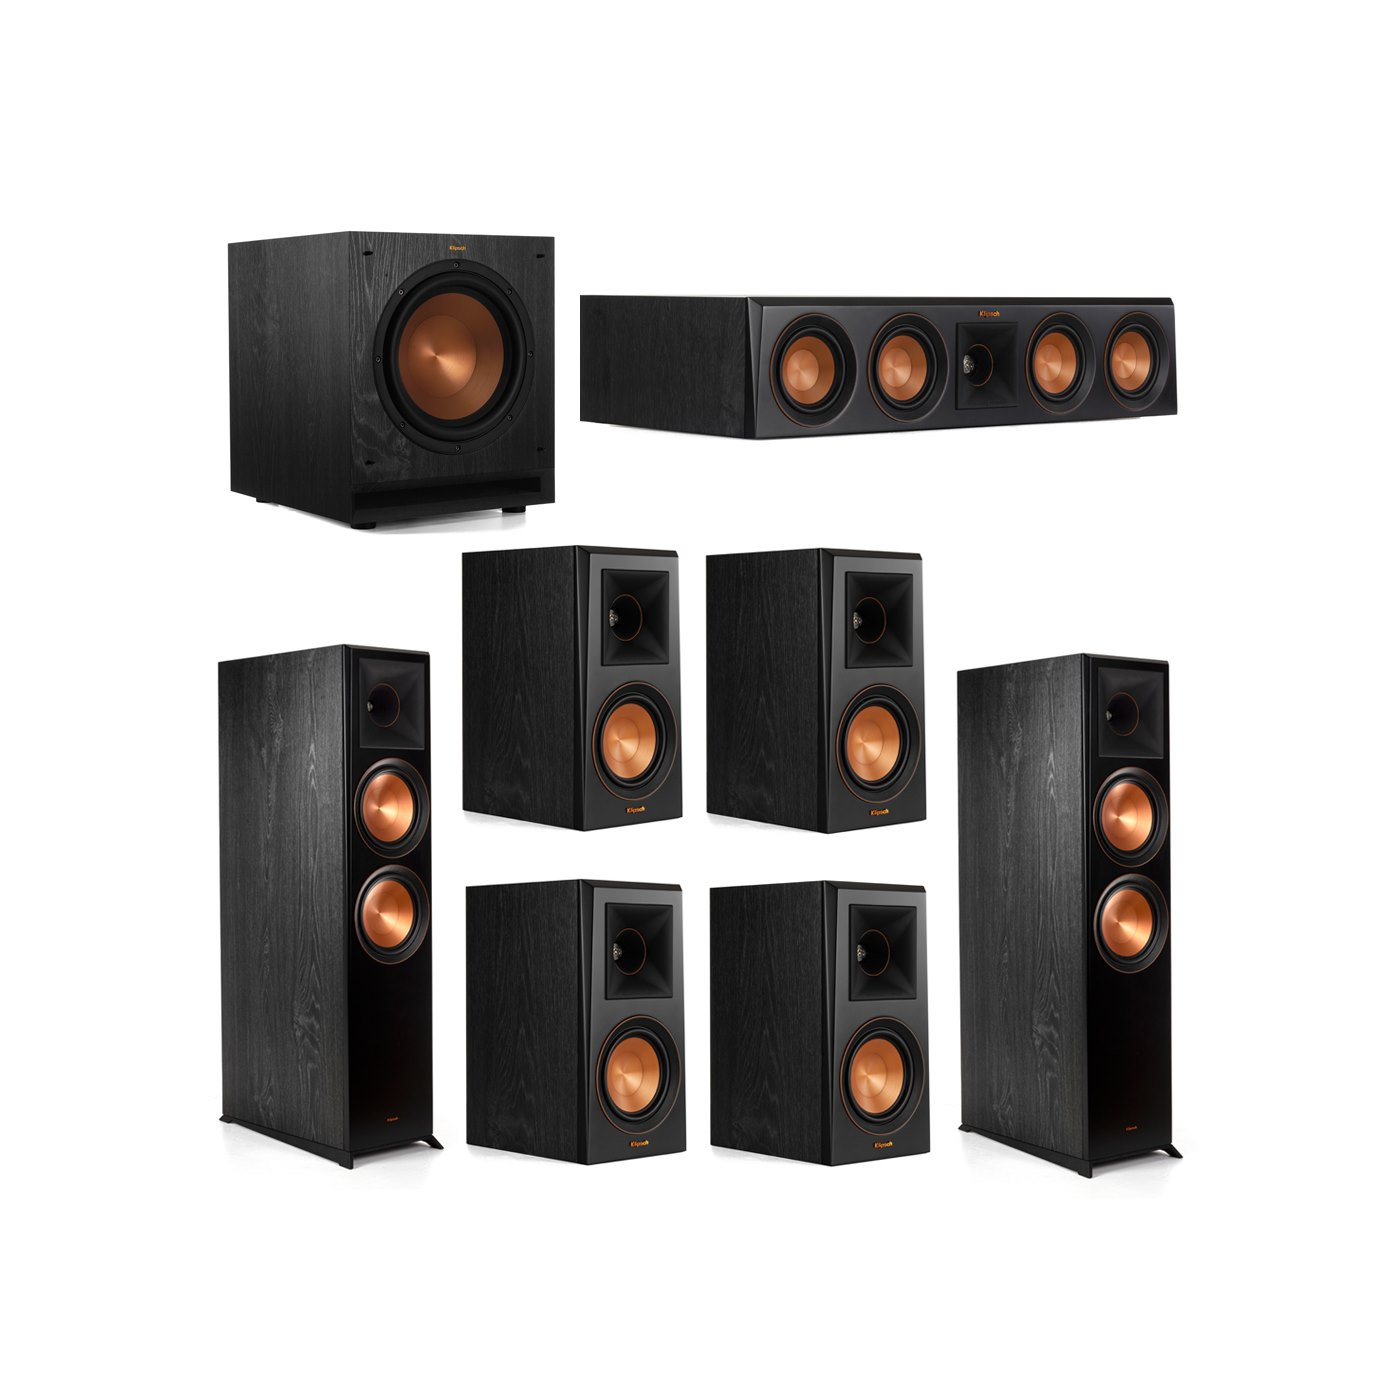 Klipsch 7.1.2 System - 2 RP-8060FA Dolby Atmos Speakers, 1 RP-404C, 4 RP-500M Speakers, 1 SPL-100